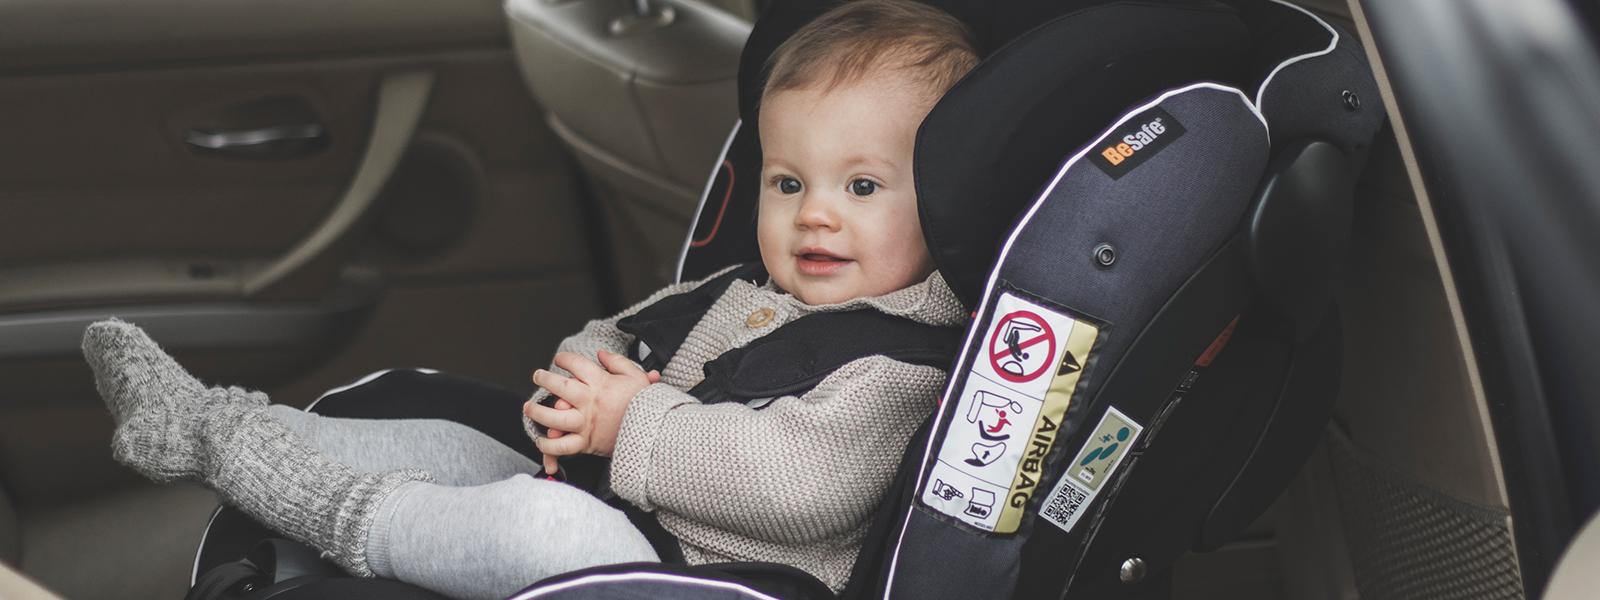 Baby Car Seat Test Izi Plus Best In Test Again Besafe